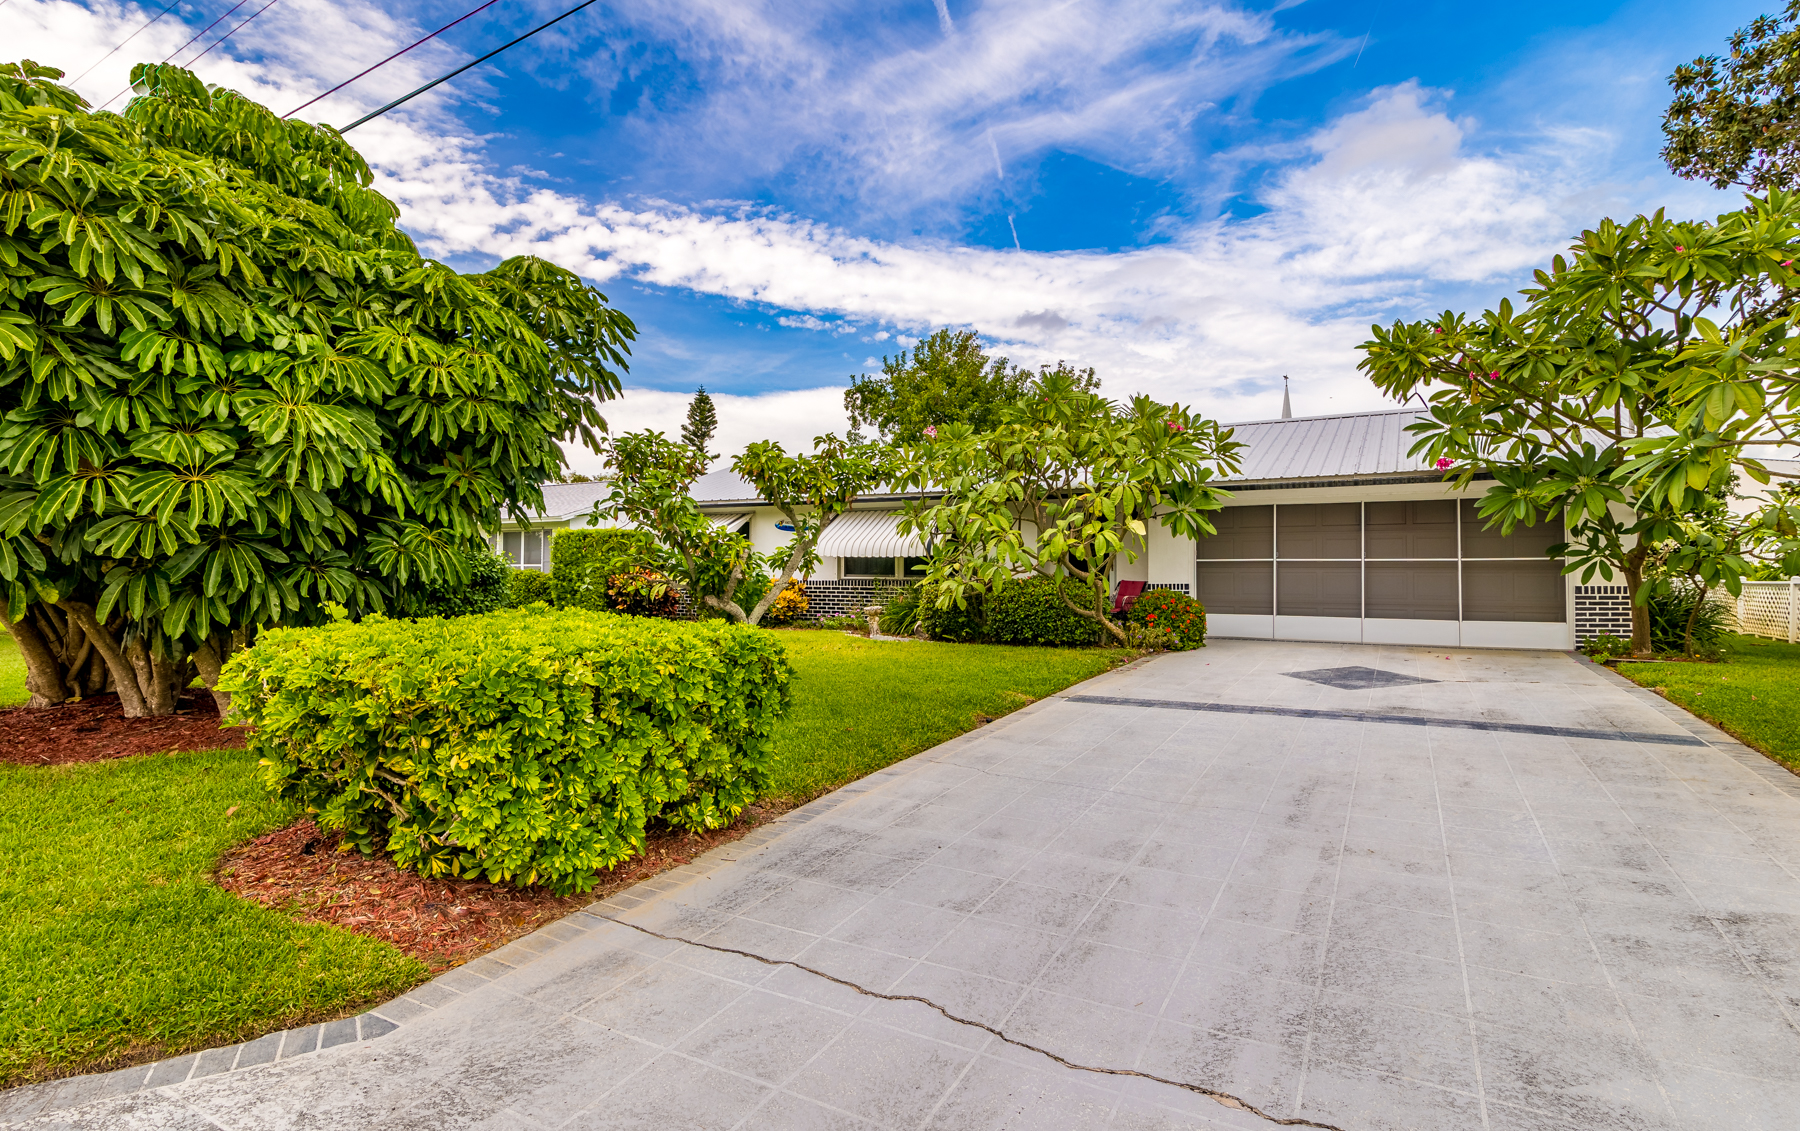 Additional photo for property listing at Charming Updated Home in Riveria Estates 436 Dolphin Street Melbourne Beach, Florida 32951 United States